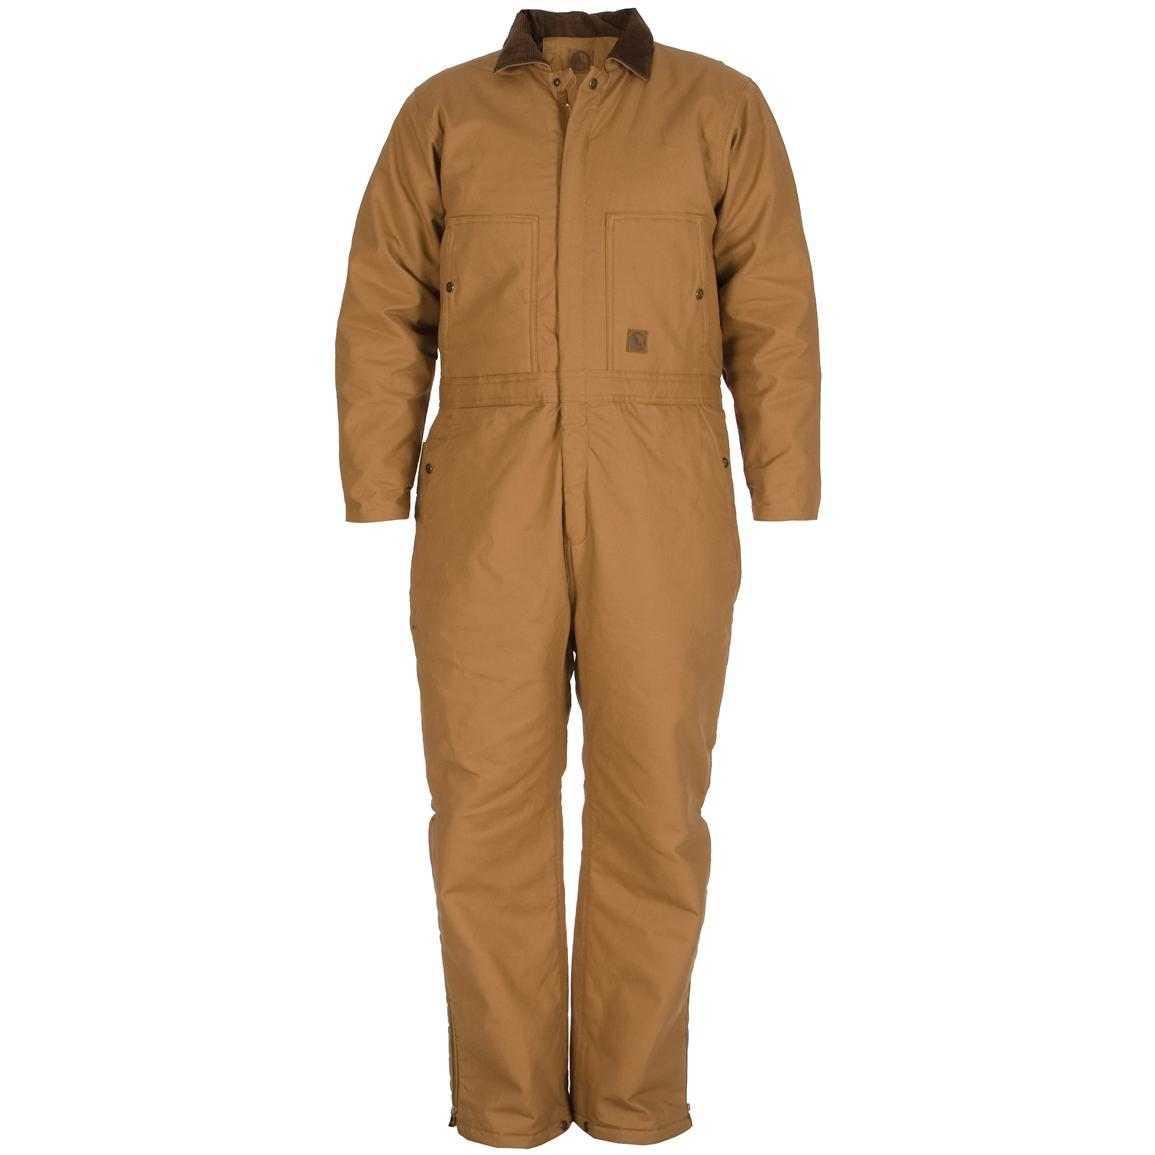 Men's Standard Insulated Coveralls, Brown Duck